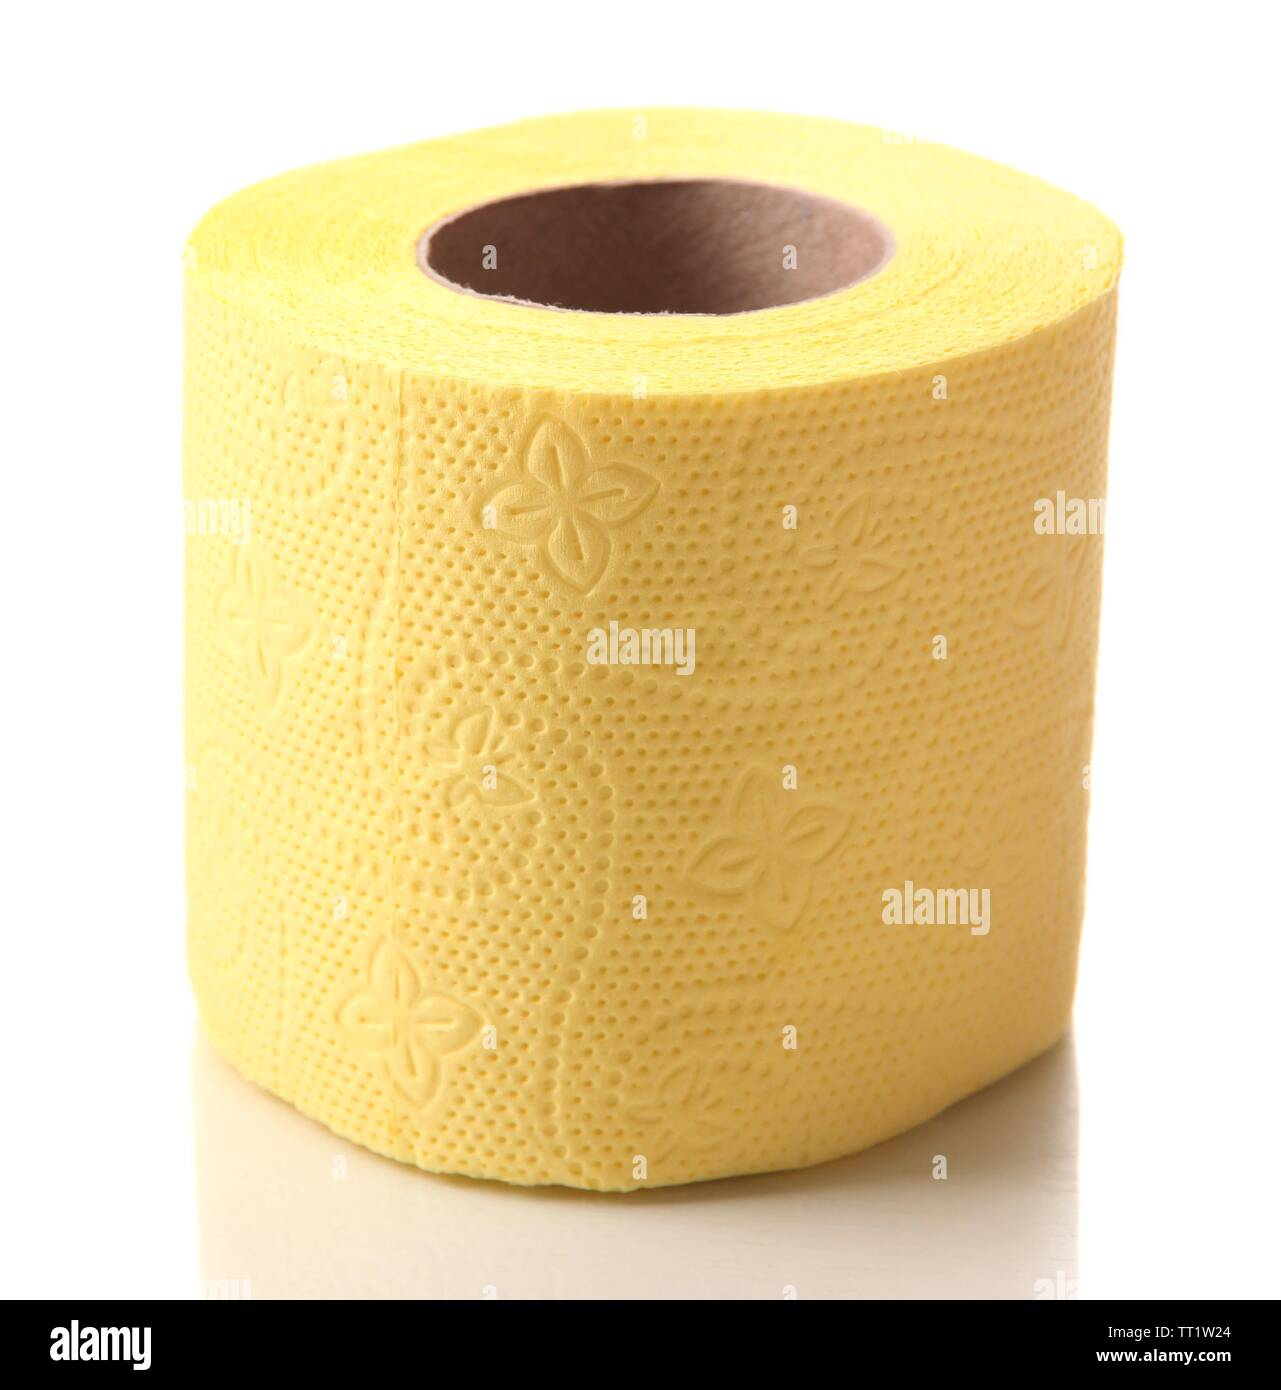 Color toilet paper roll isolated on white - Stock Image